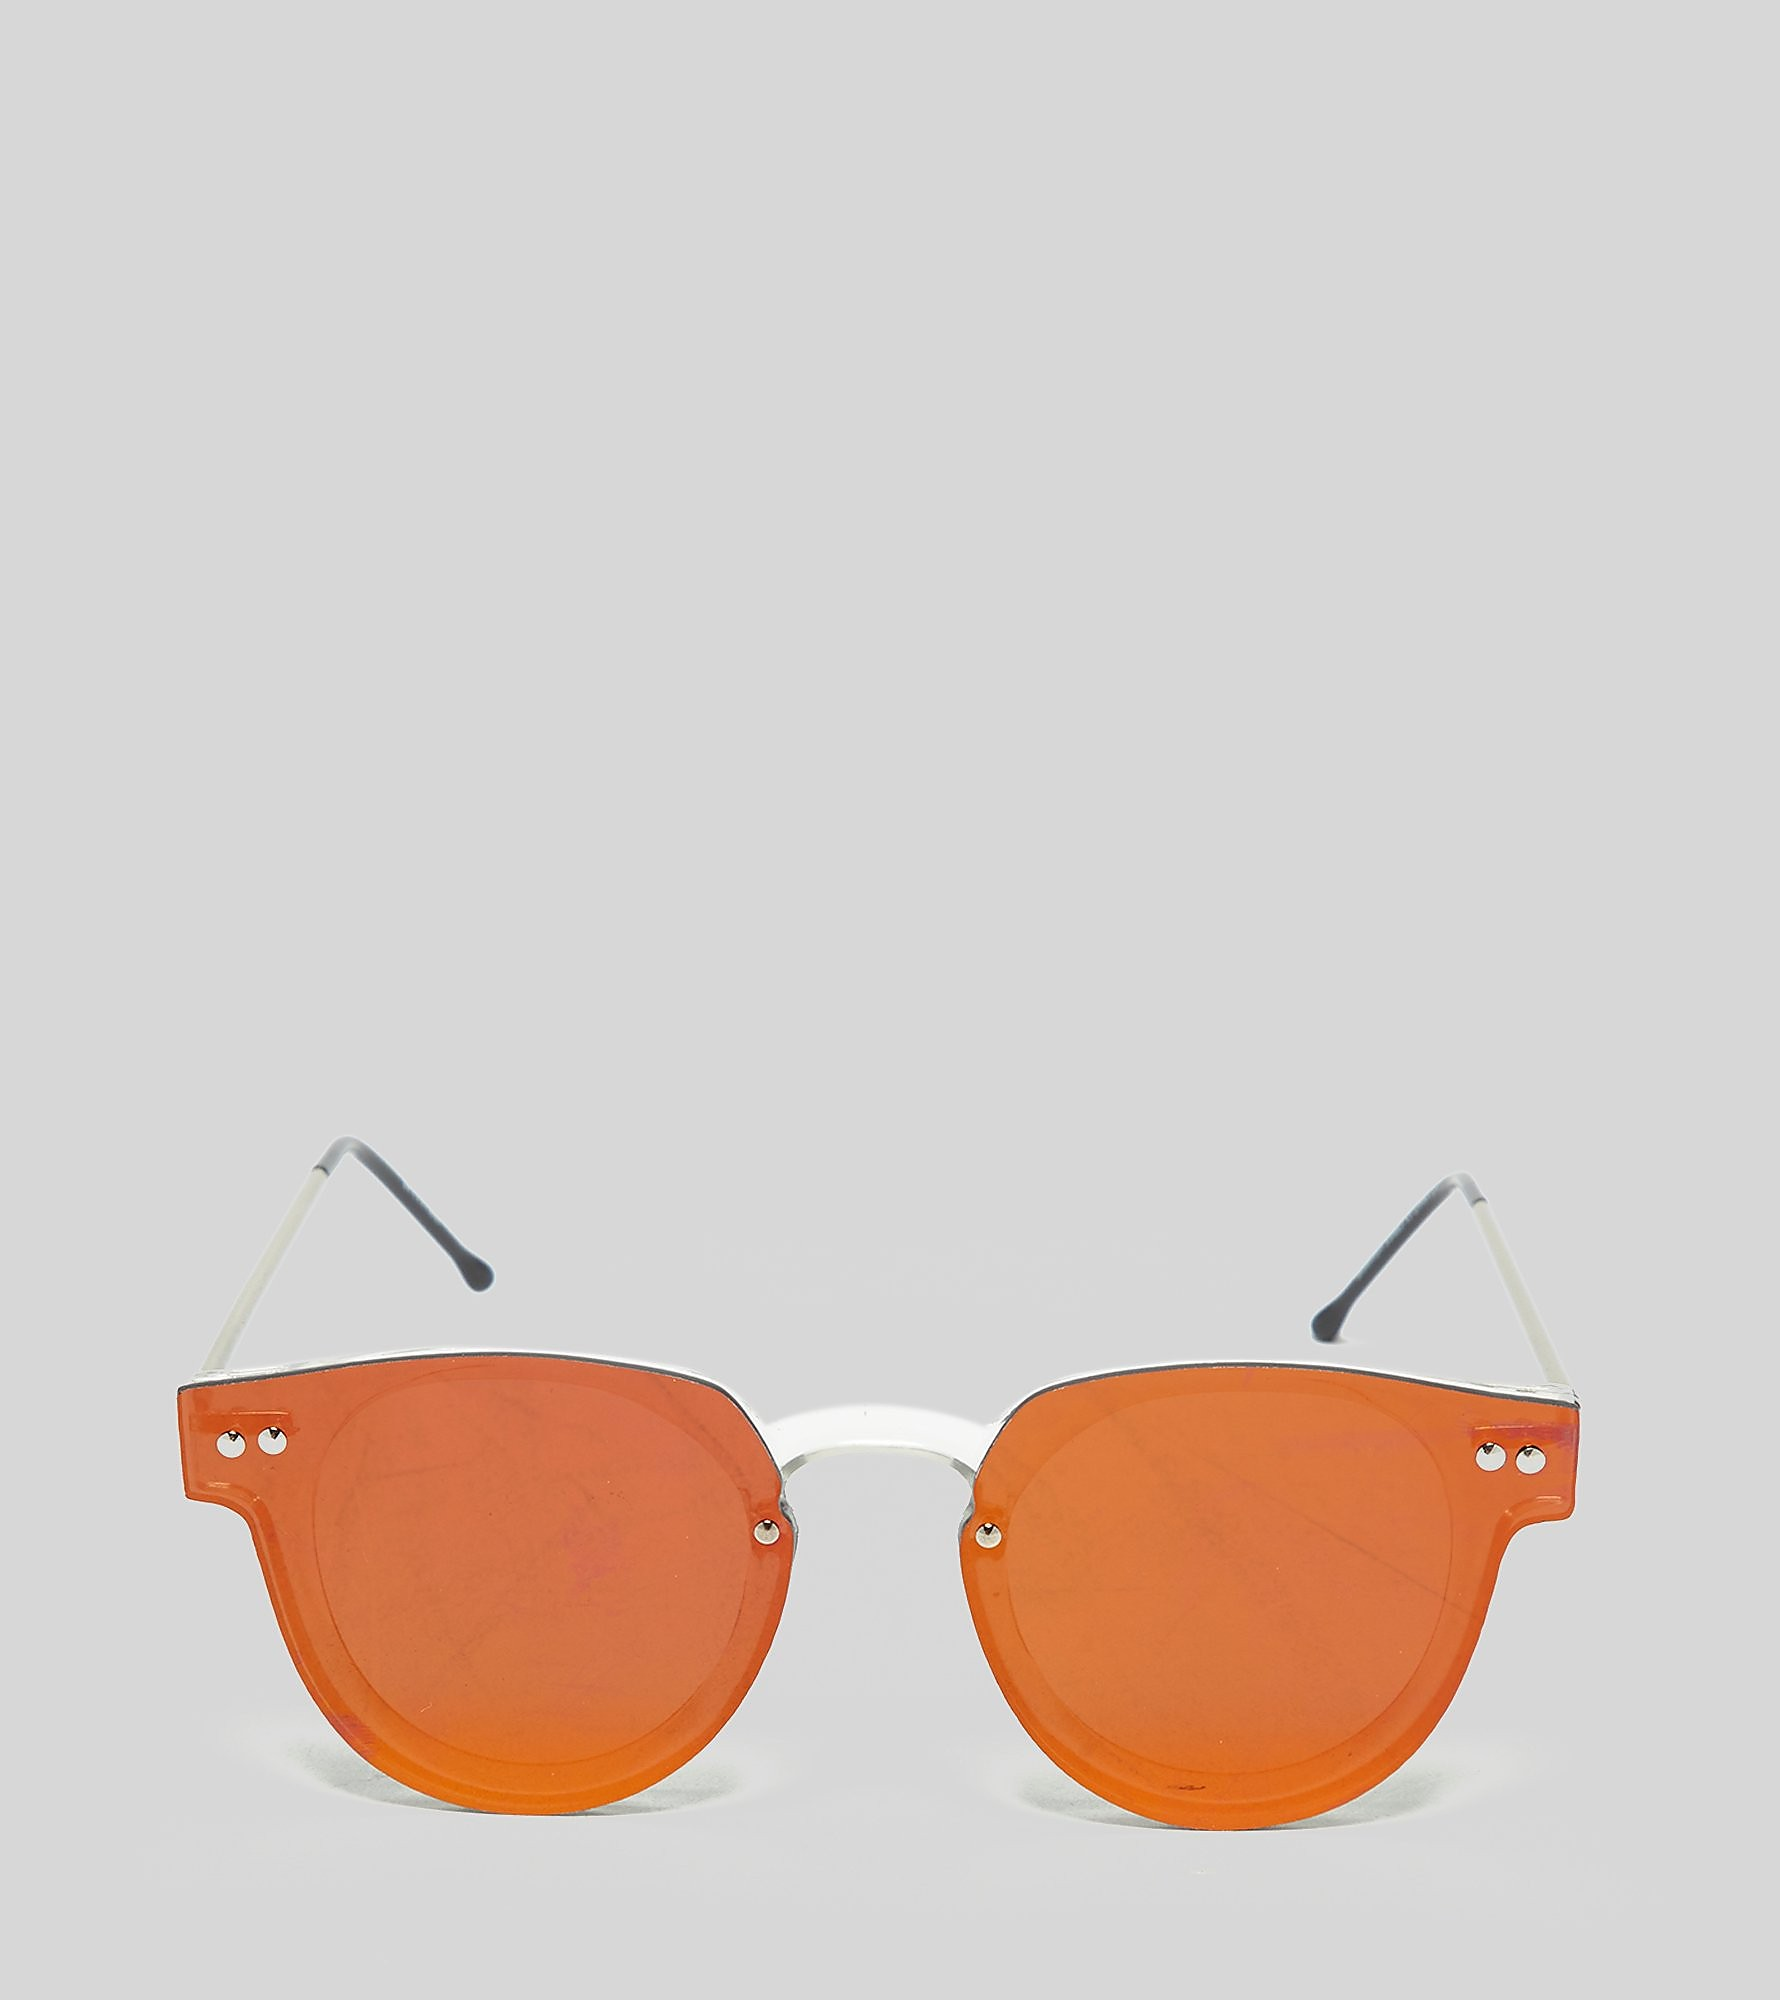 Spitfire Sharper Edge Sunglasses